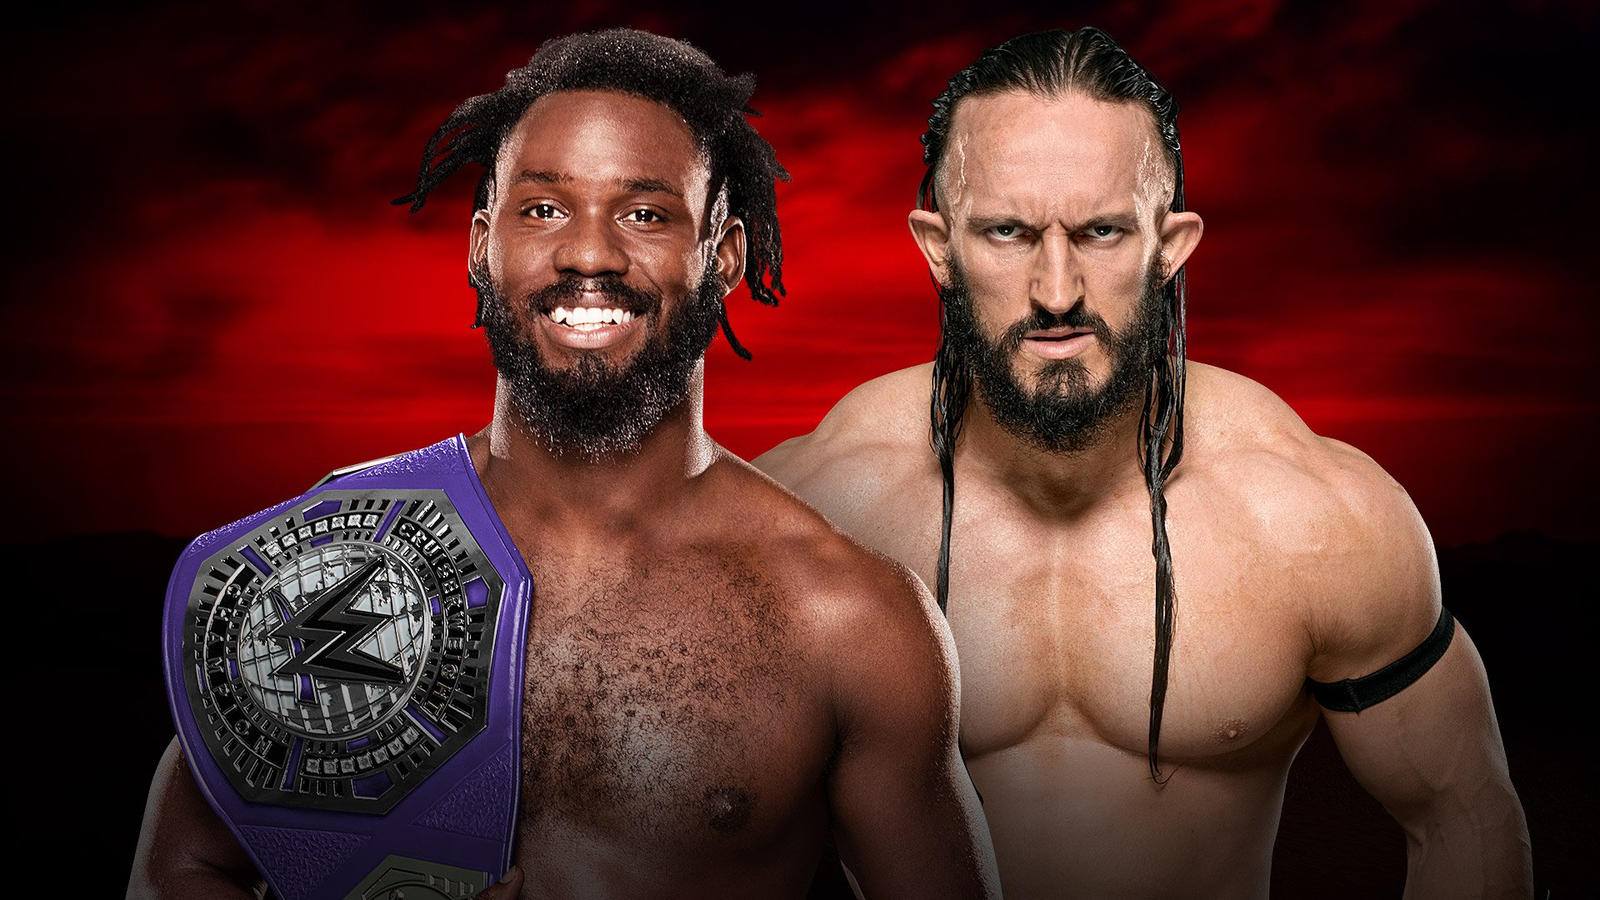 Confirmed and Potential Matches for WWE Royal Rumble 2017 20170109_RoyalRumble_SwannNeville--274ced054bbca3800f44d49940bf87bf